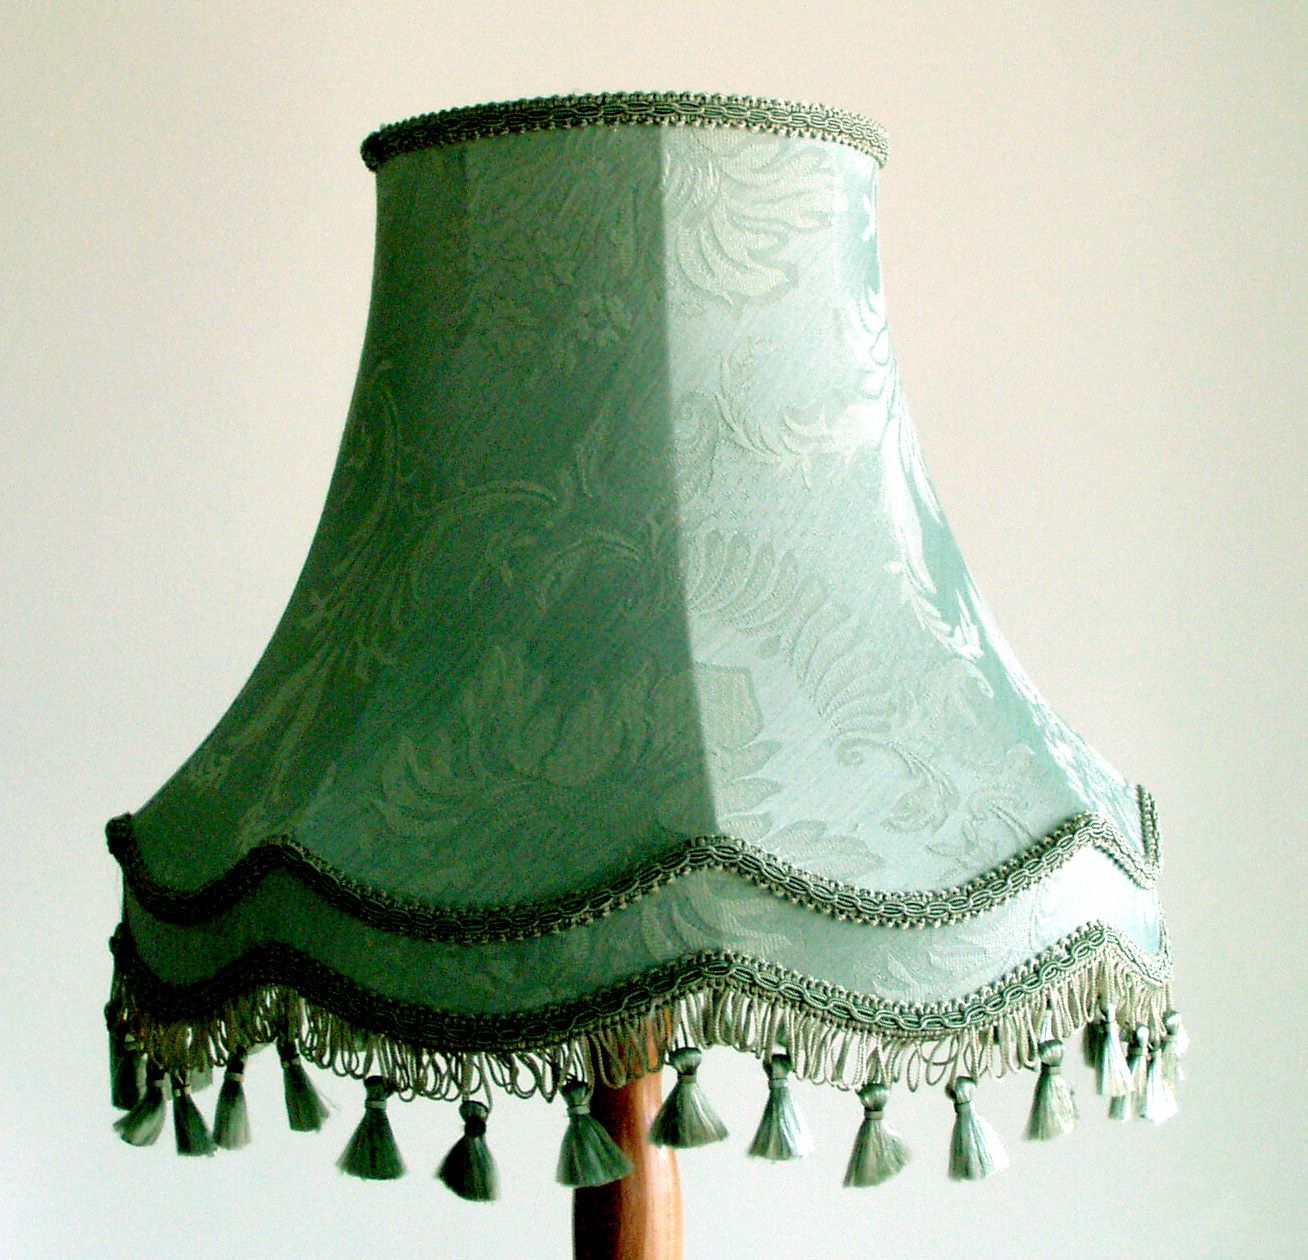 Old Fashioned Lamp Shade: 1000+ images about lampshades on Pinterest | The thread, Old world and  Vintage,Lighting